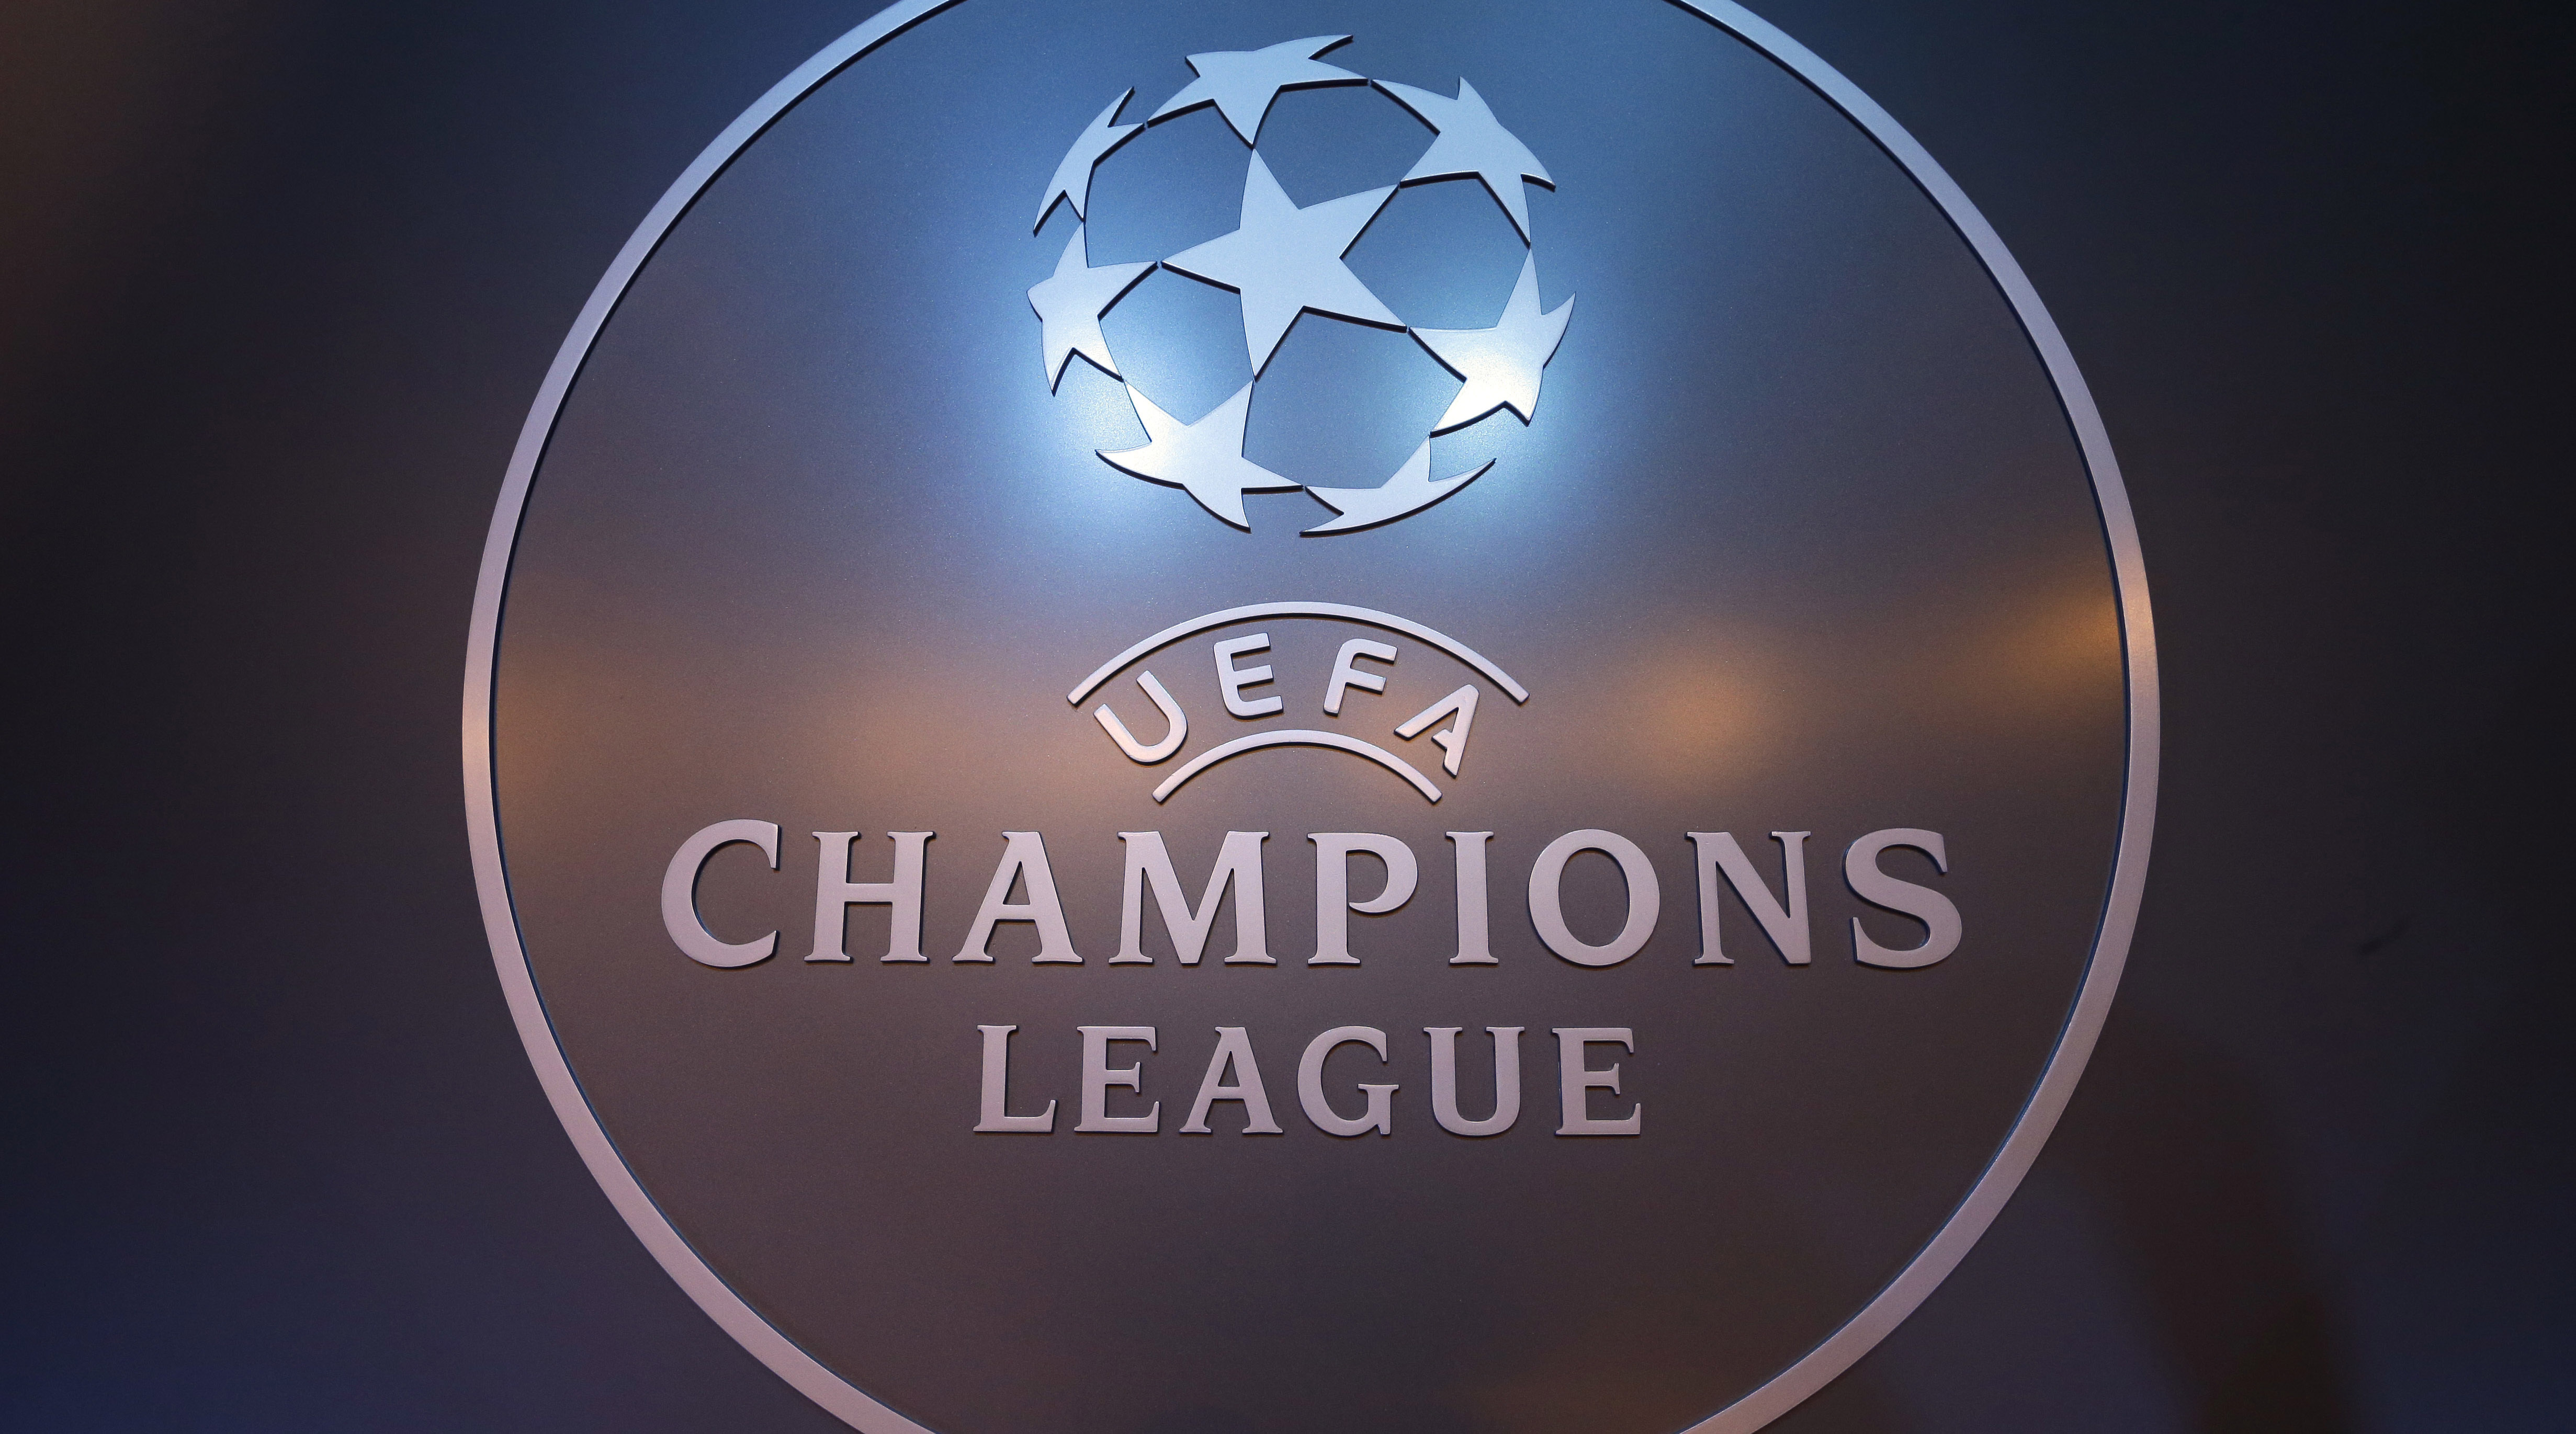 turner univision get champions league tv rights si com